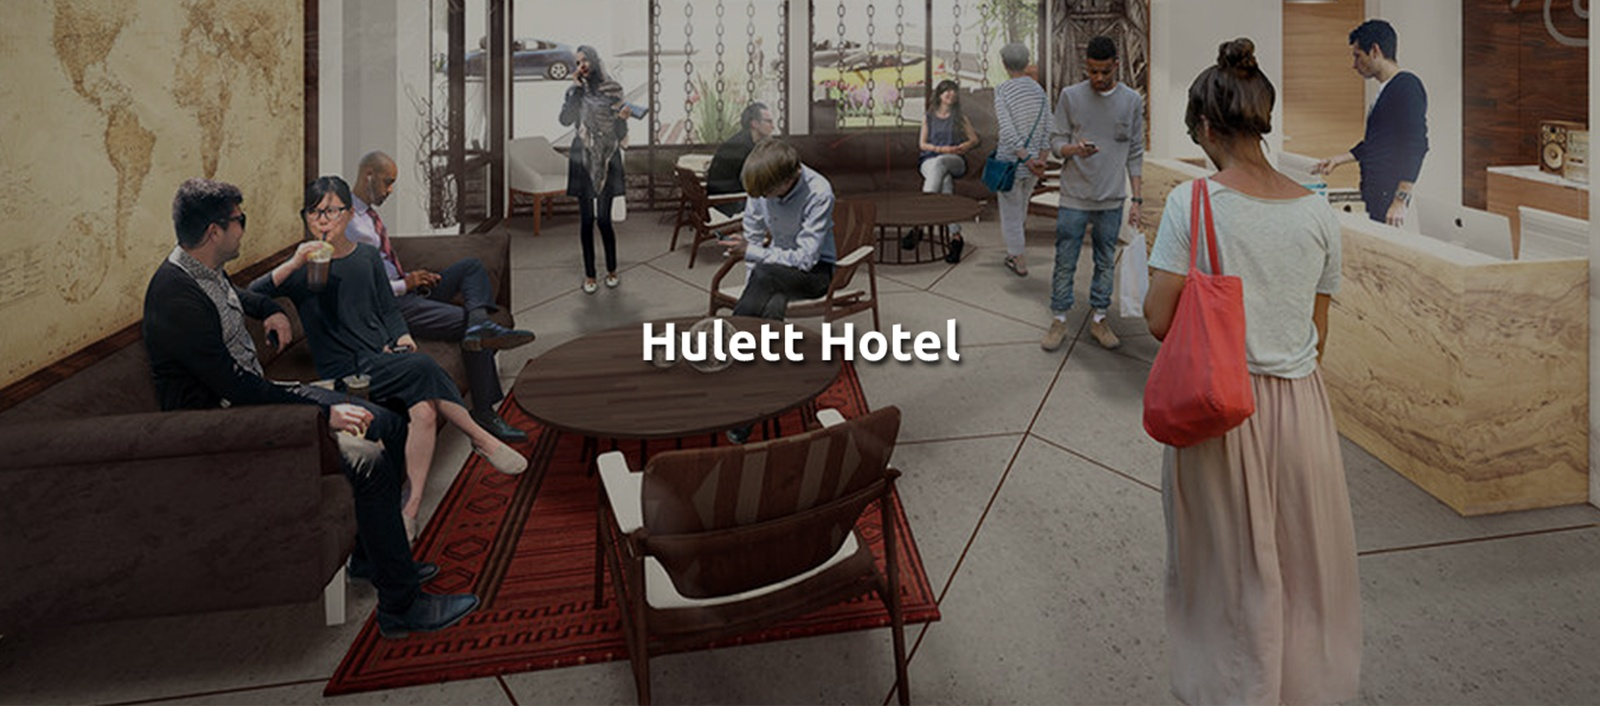 Hulett Hotel - Commercial Building Architecture Cleveland by redhouse studio